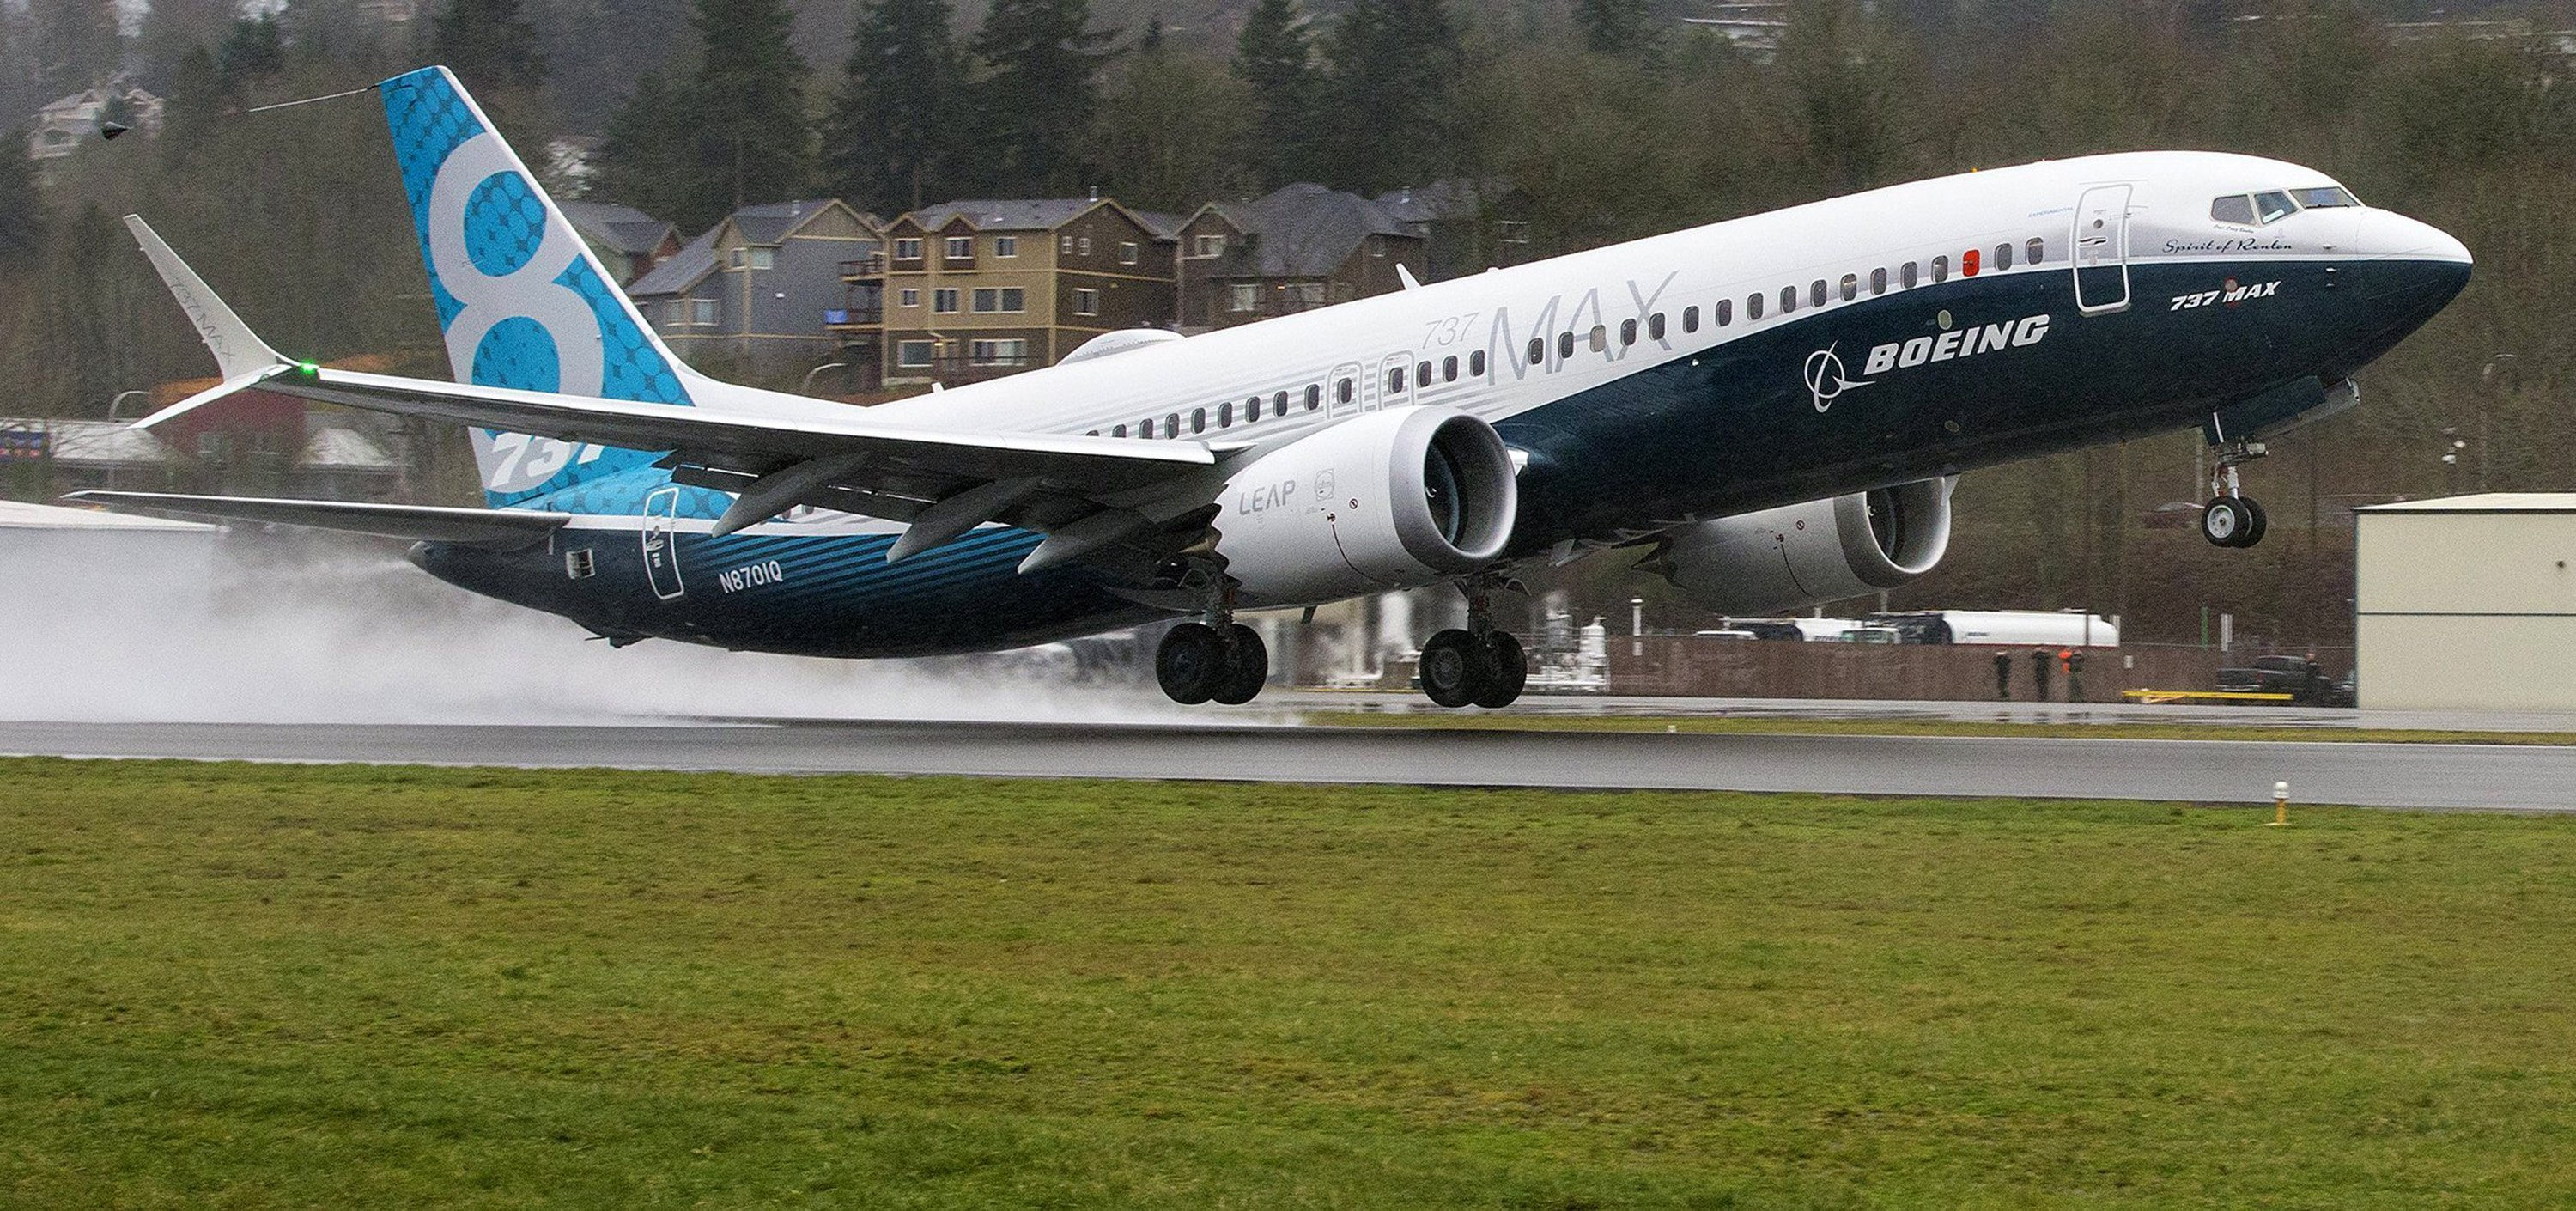 Boeing's liability for 737 Max hinges on crash and oversight